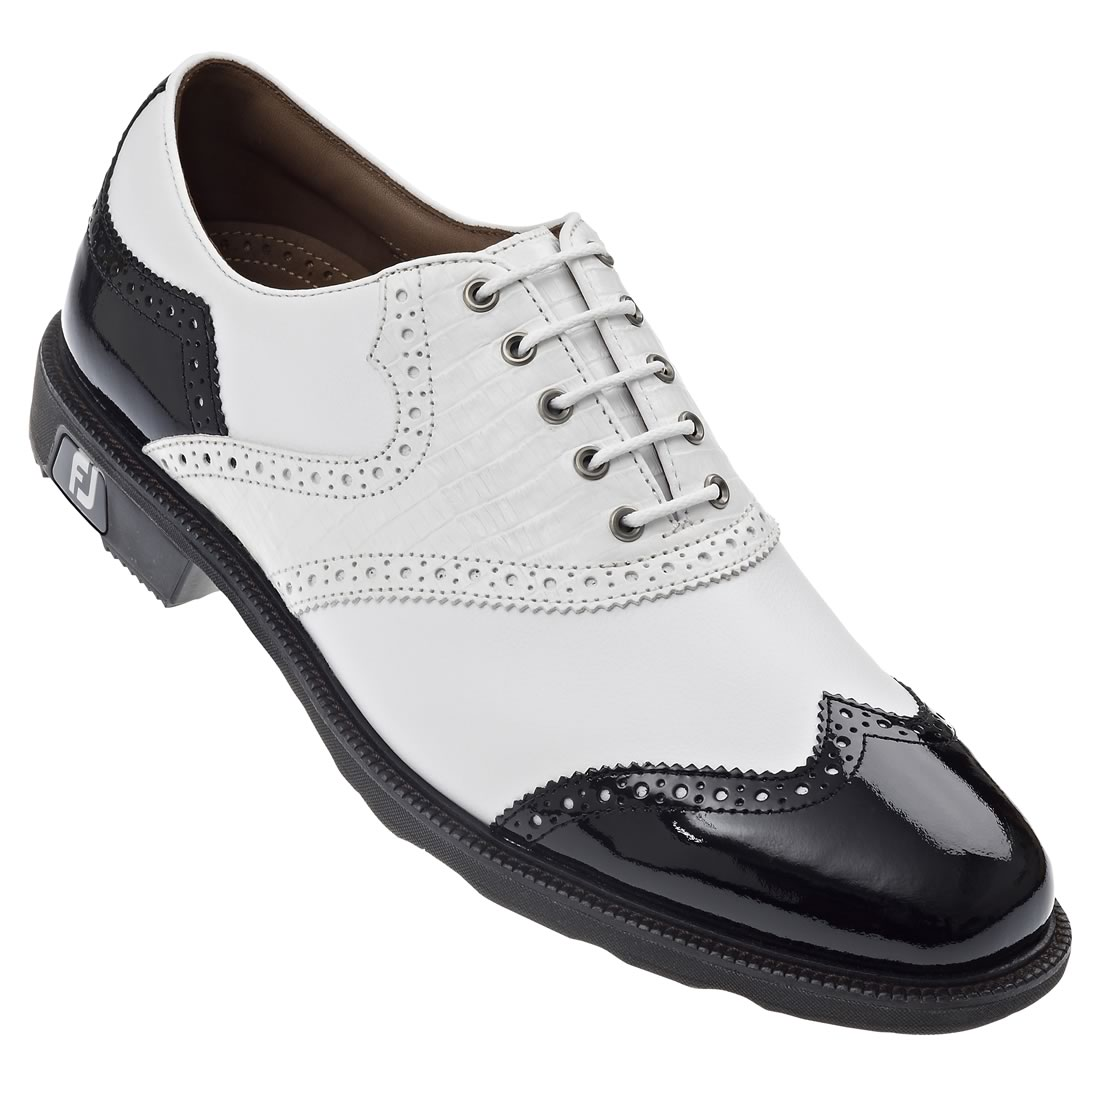 Black And Gold Golf Shoes